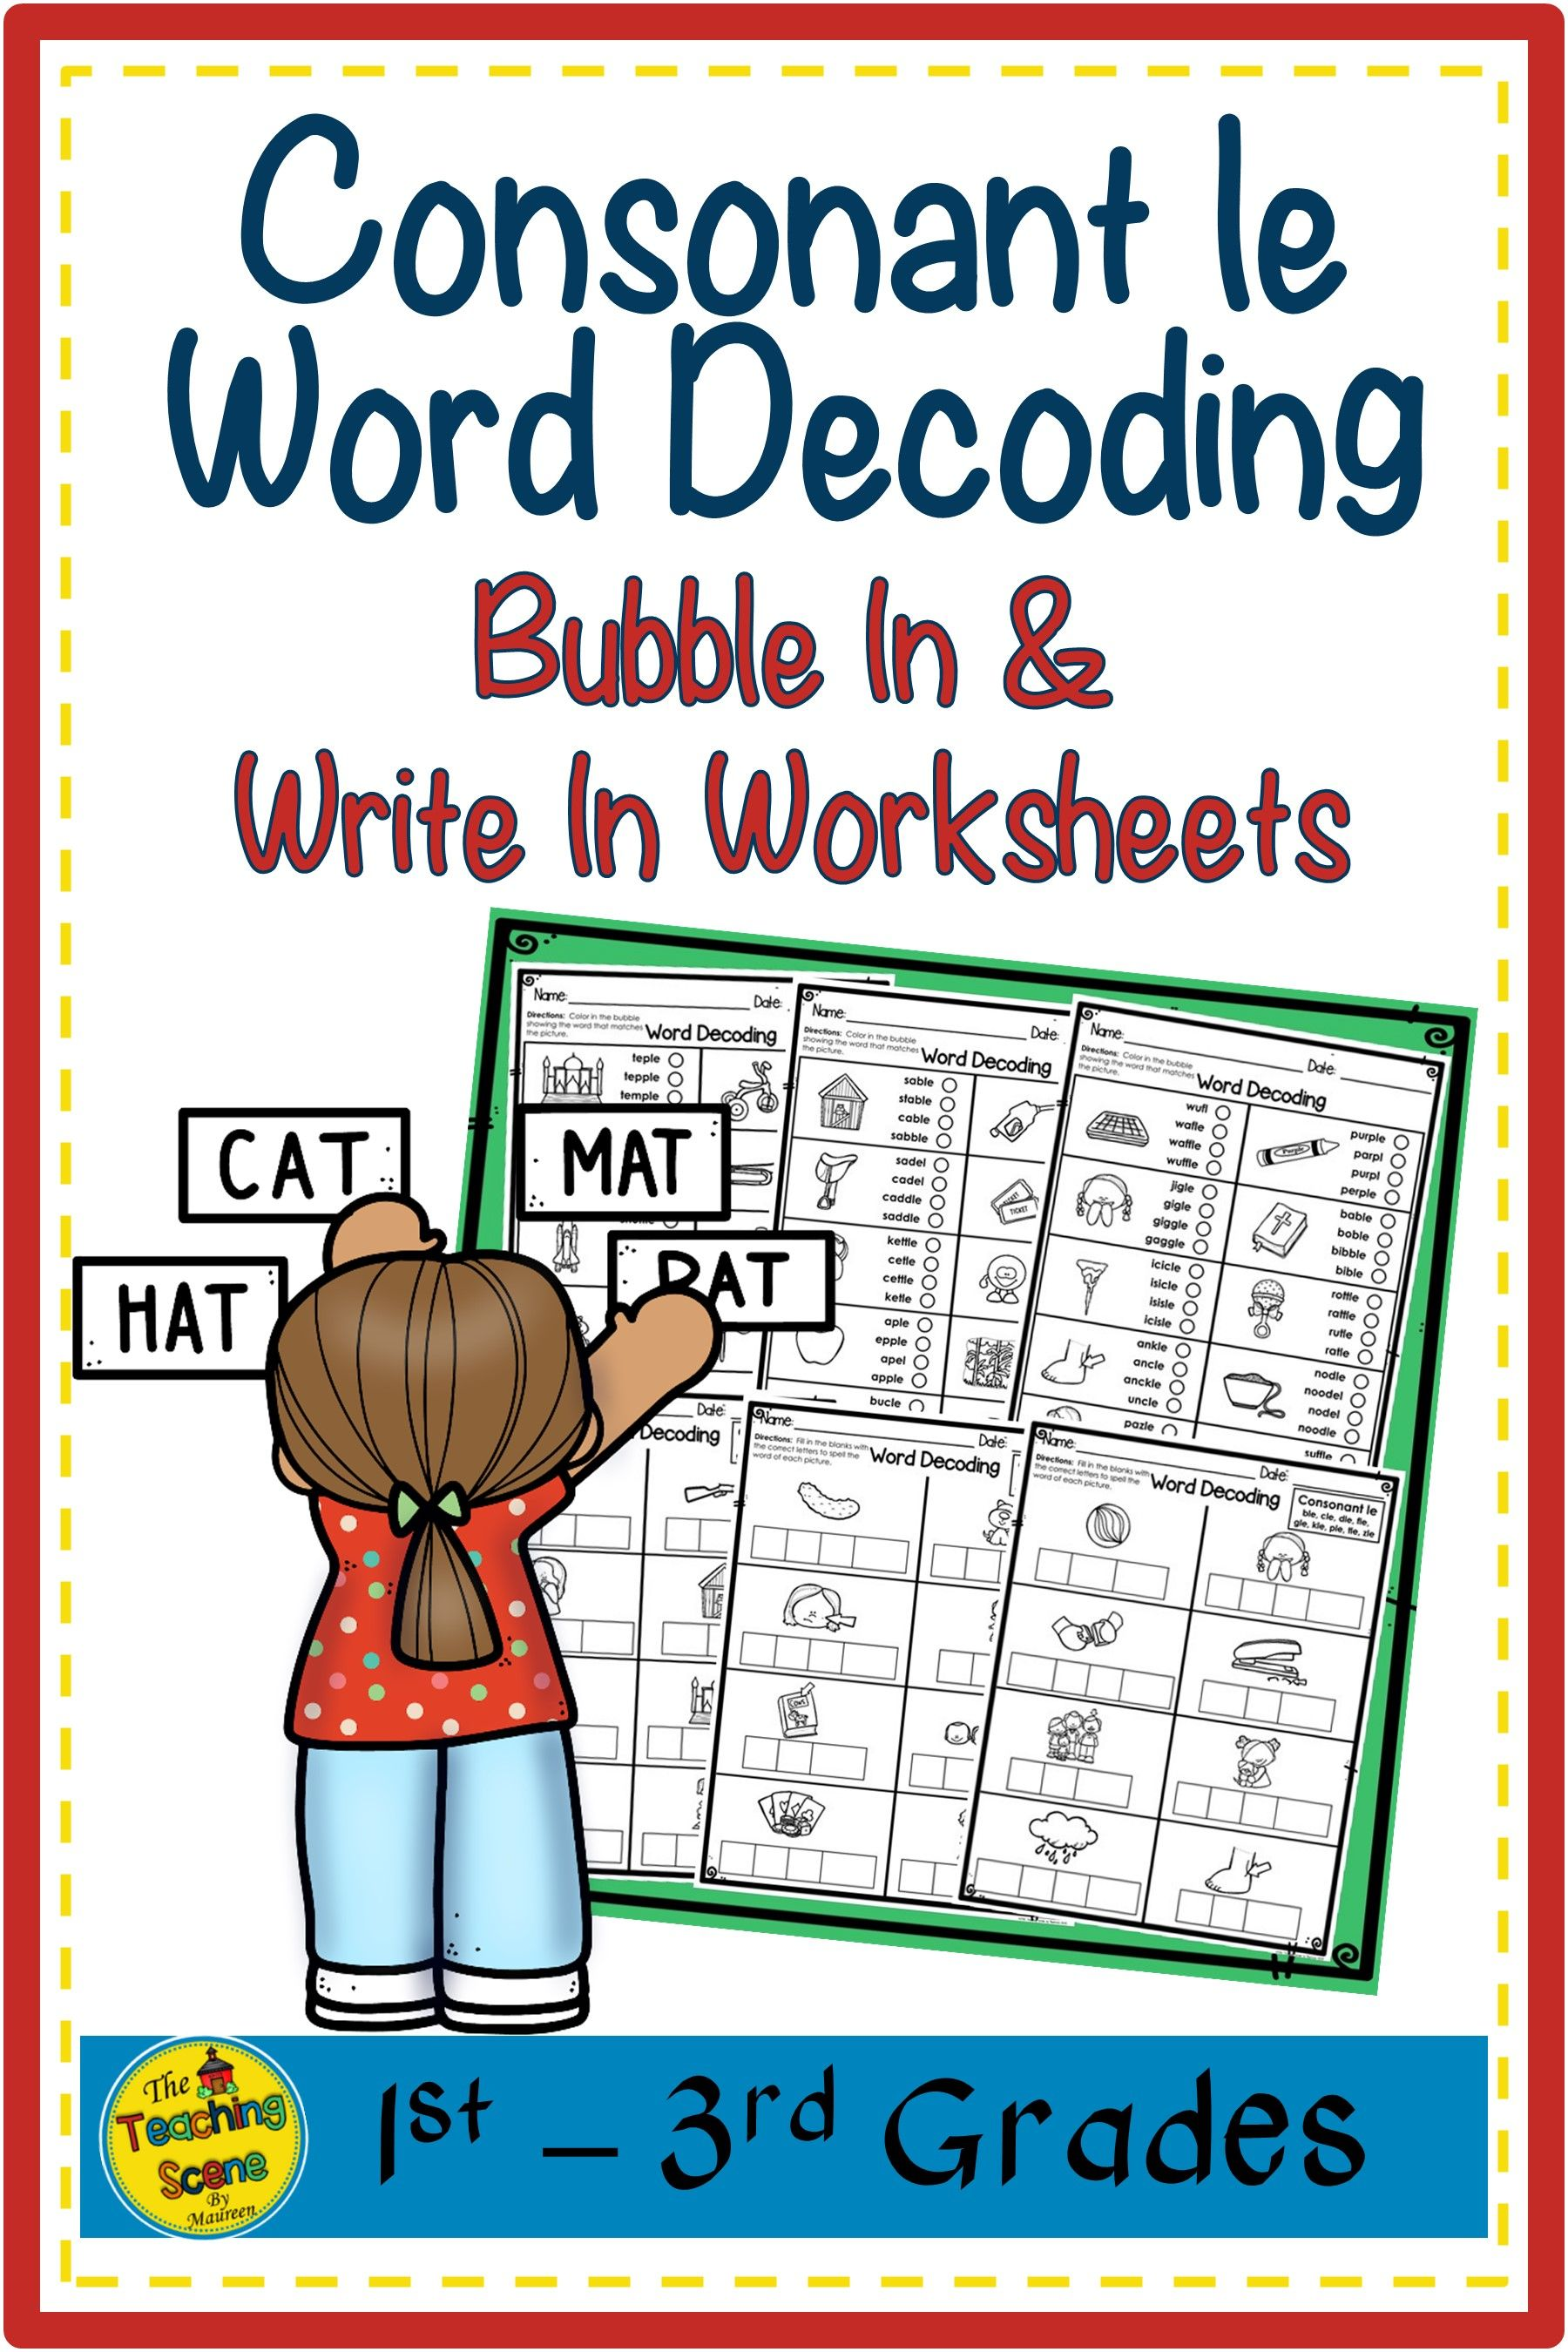 hight resolution of Consonant Le Worksheet   Printable Worksheets and Activities for Teachers